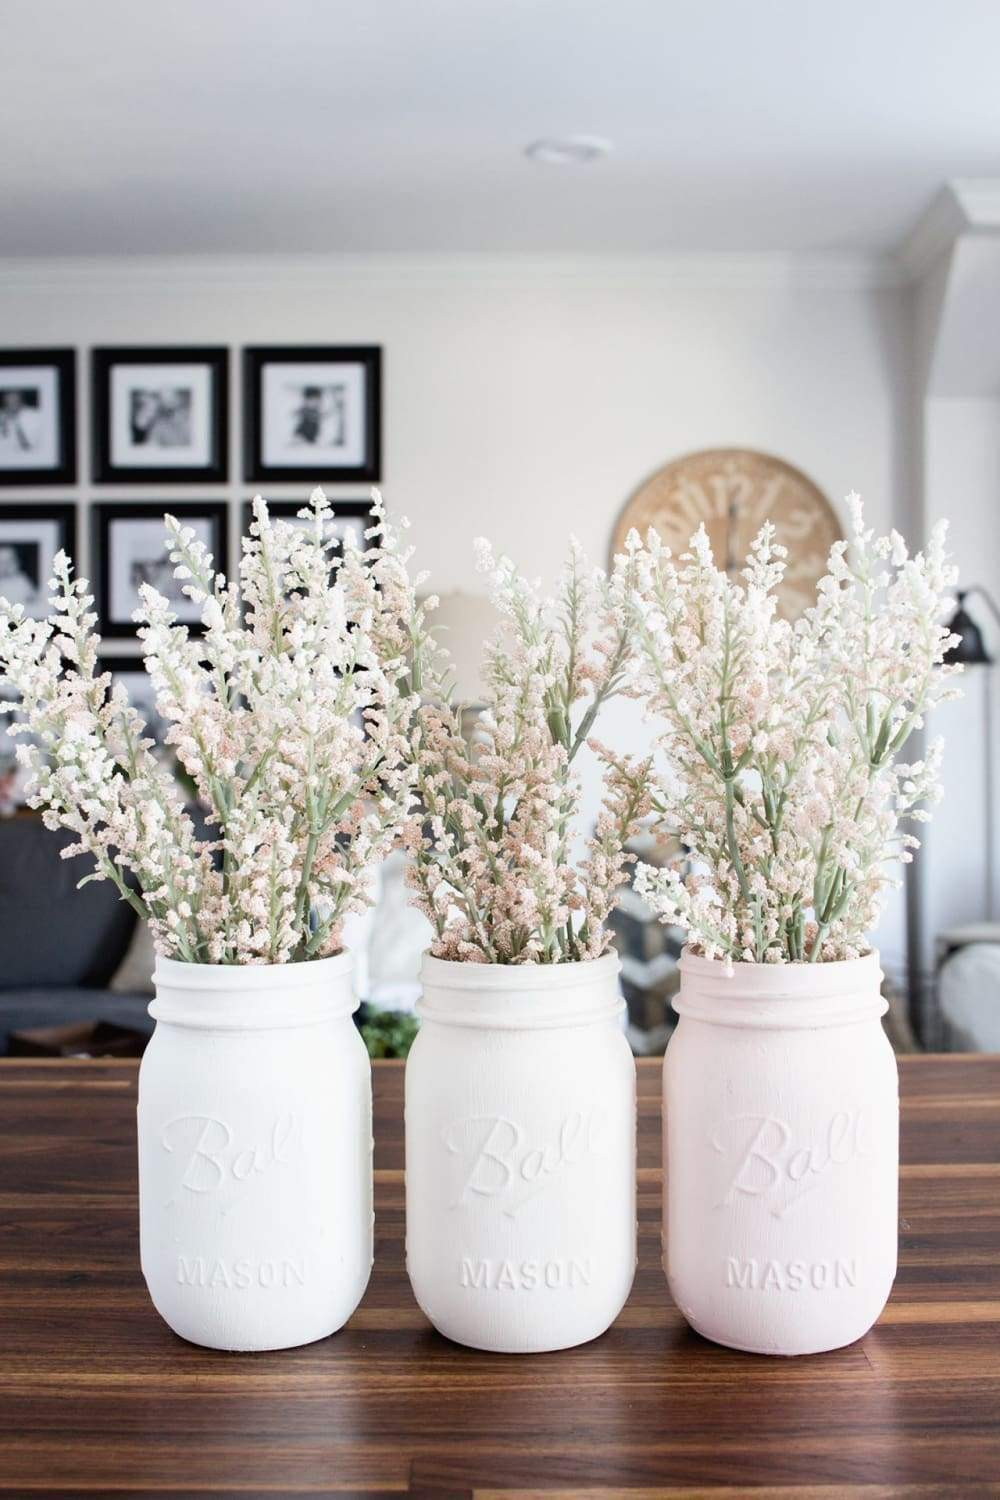 DIY pastel painted mason jar vases